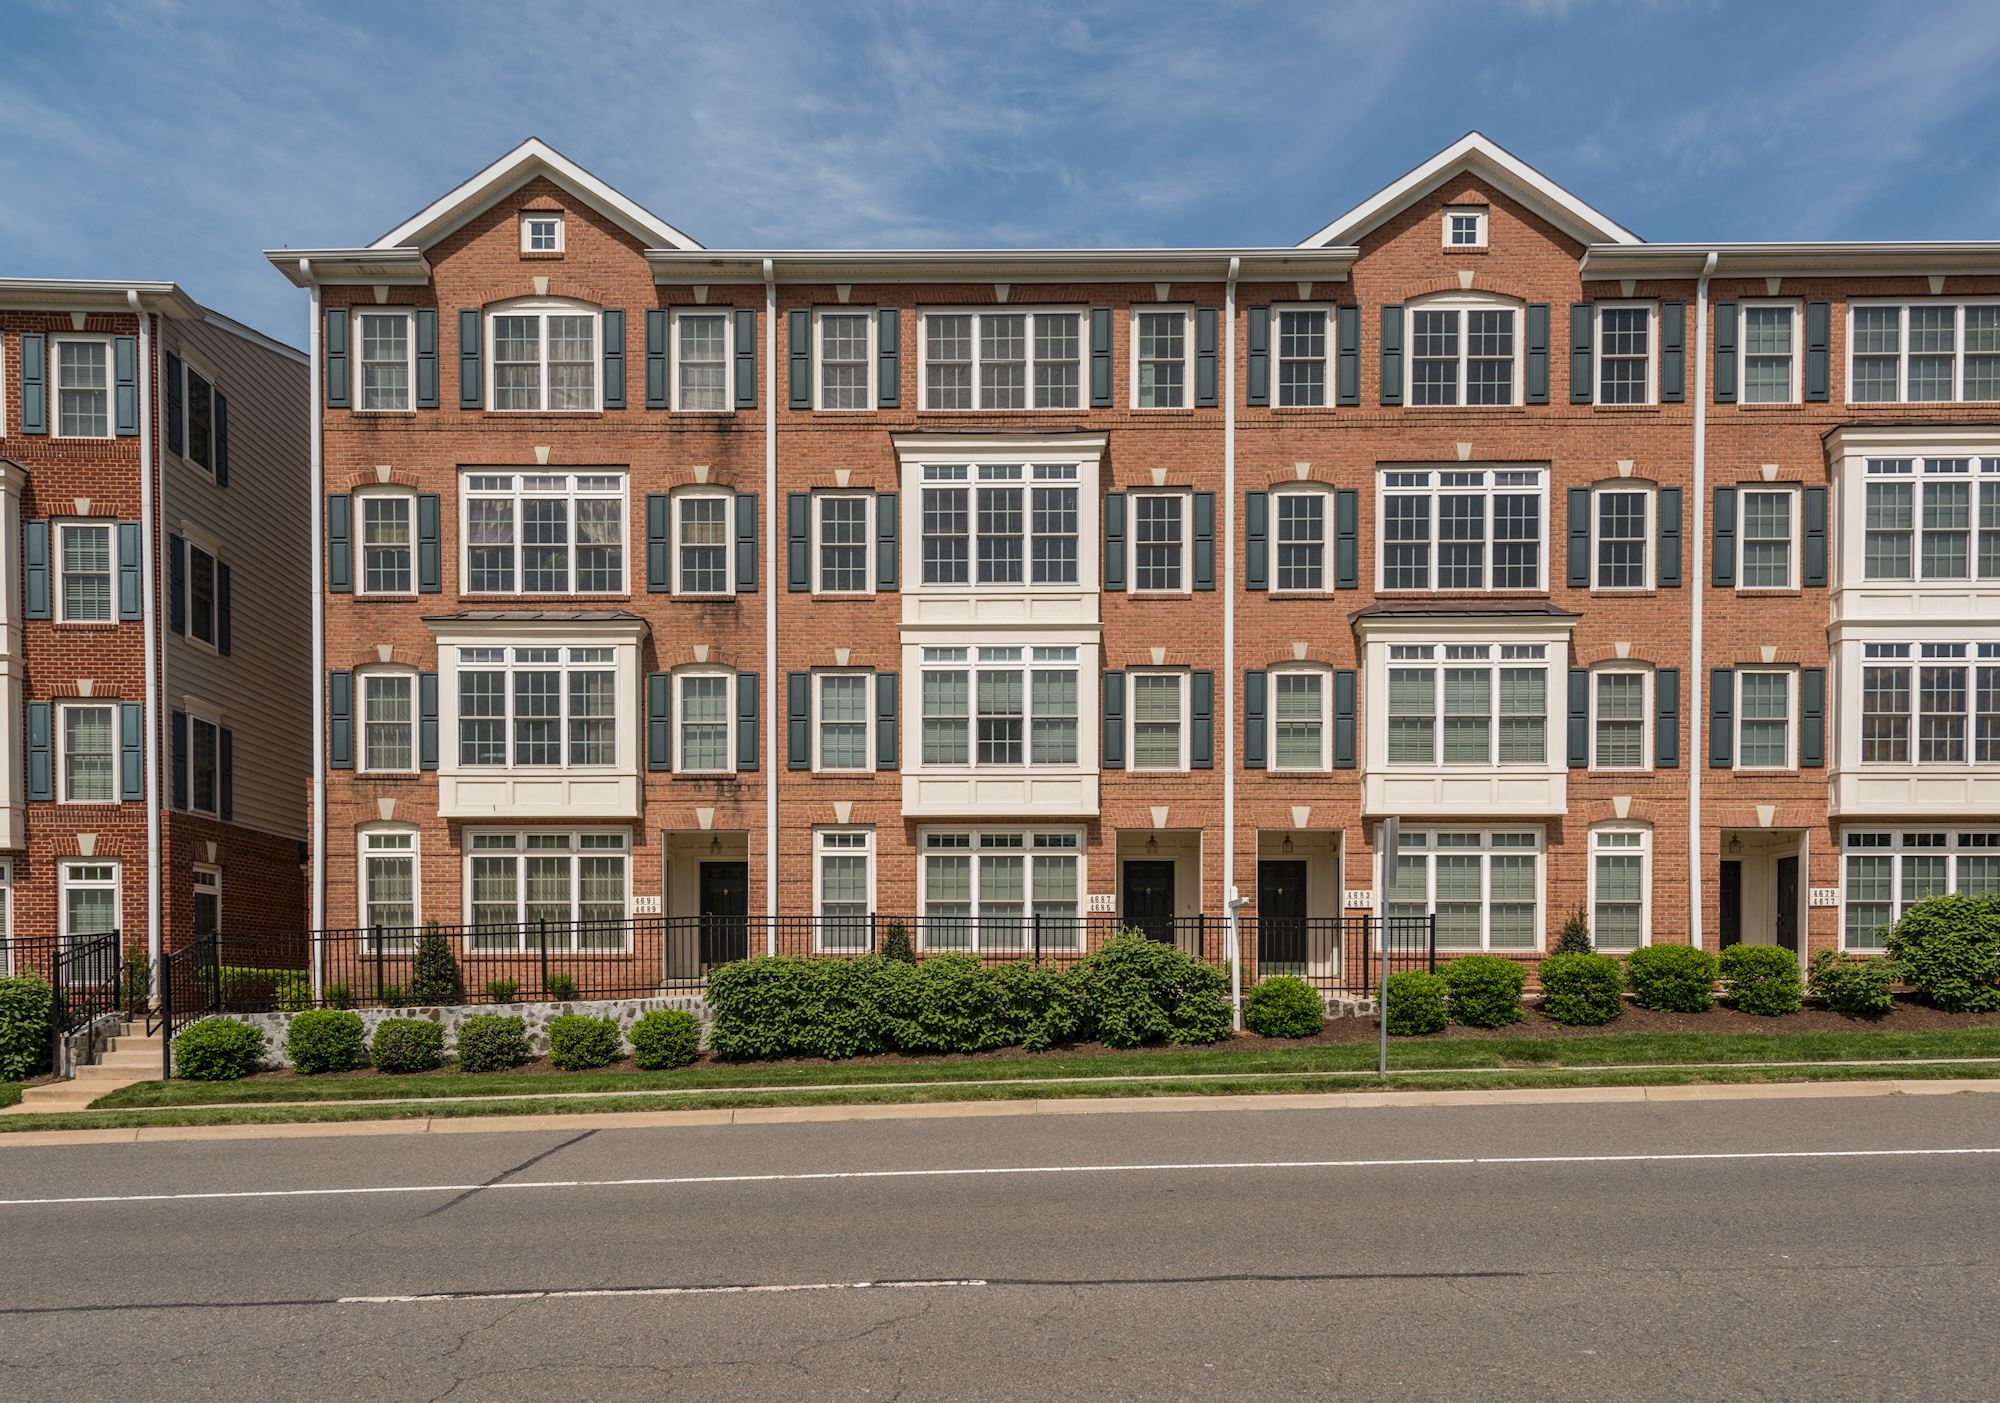 SOLD: Luxury 3 Bed Townhouse In Fairfax